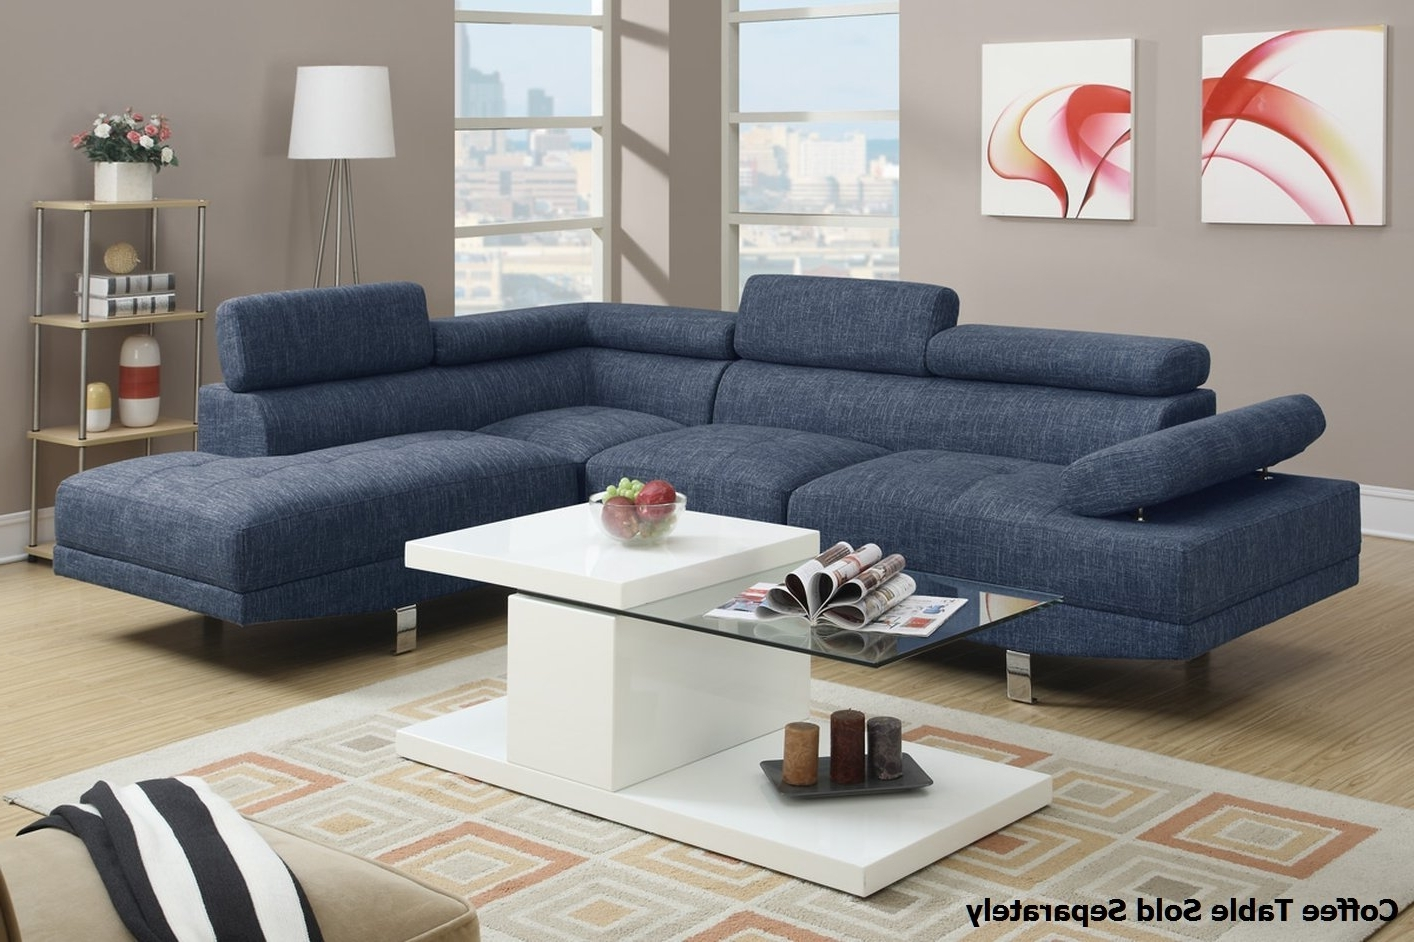 Most Current Sofas Centerectionalofa Blue Velvet Denim Navy Houston Texas Pertaining To Houston Sectional Sofas (View 13 of 20)